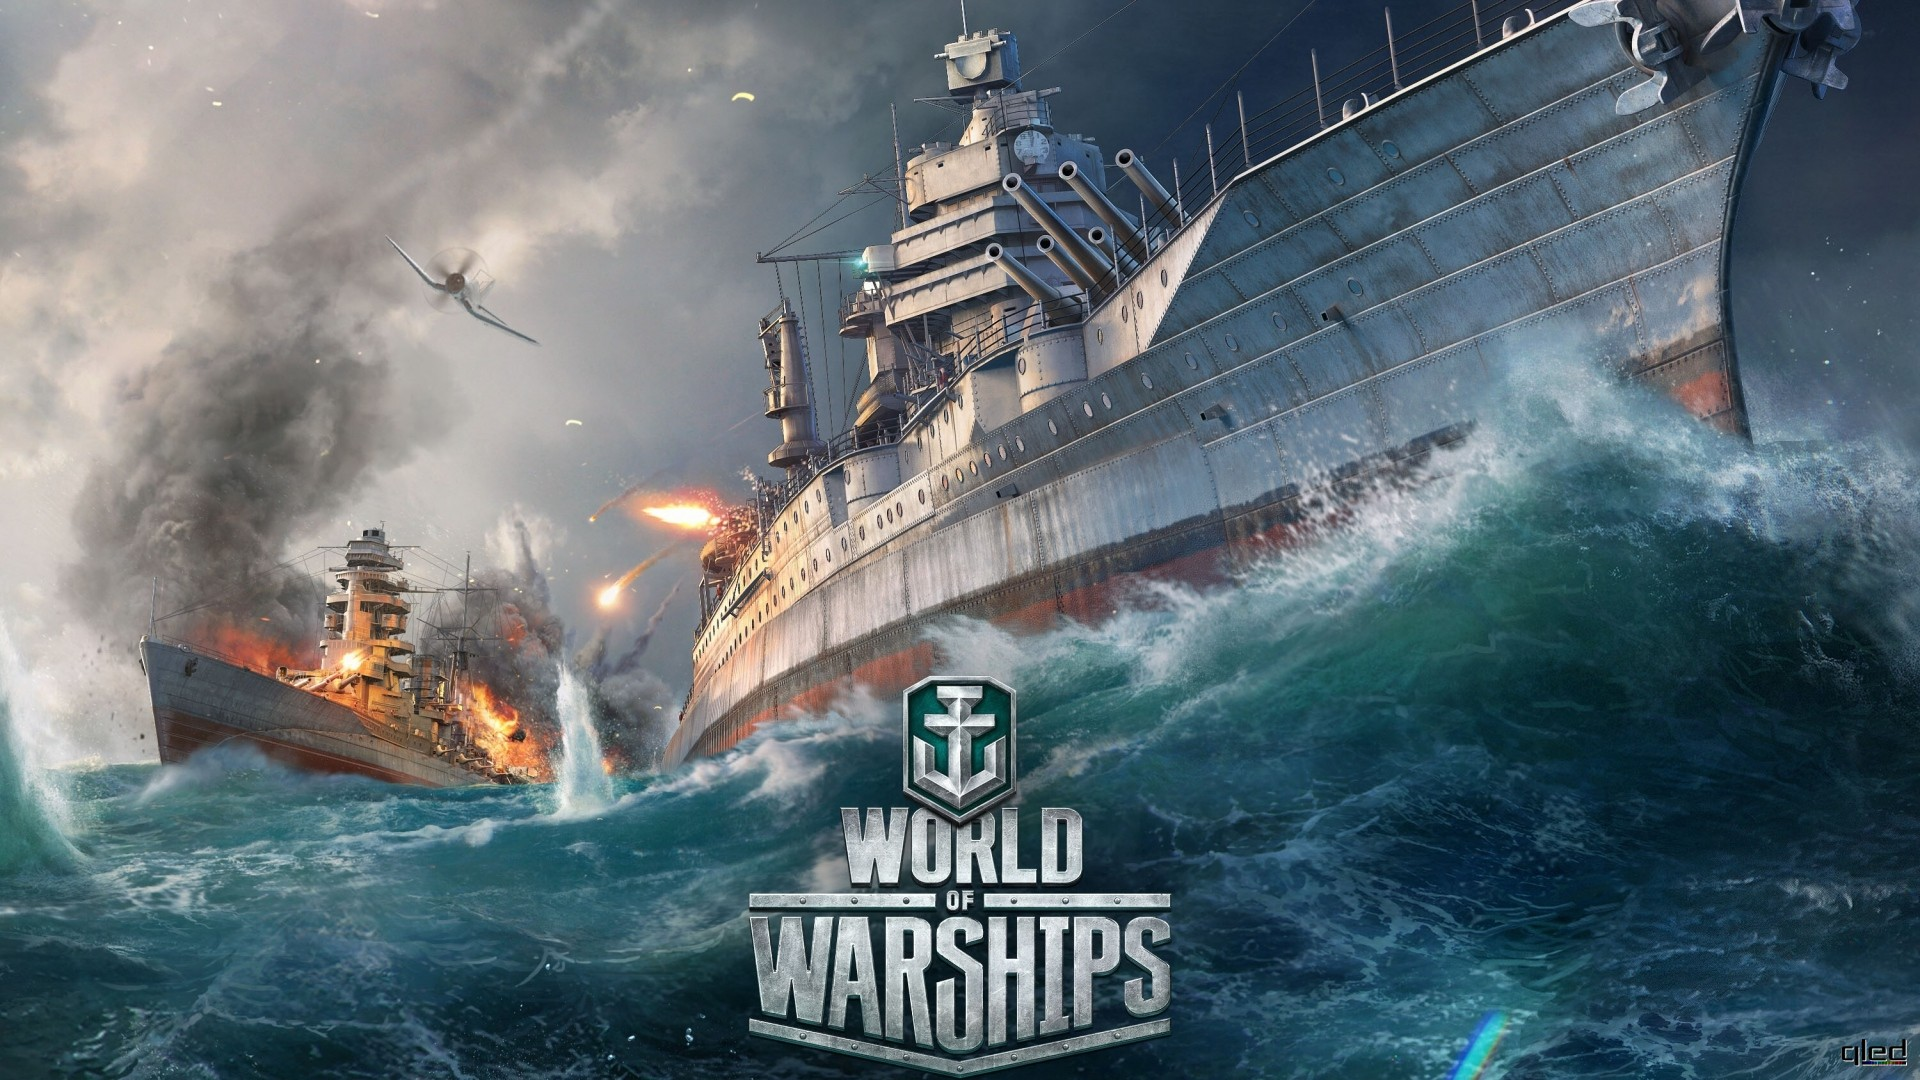 ❤️World of Warships Cruiser as a gift-bonus code❤️